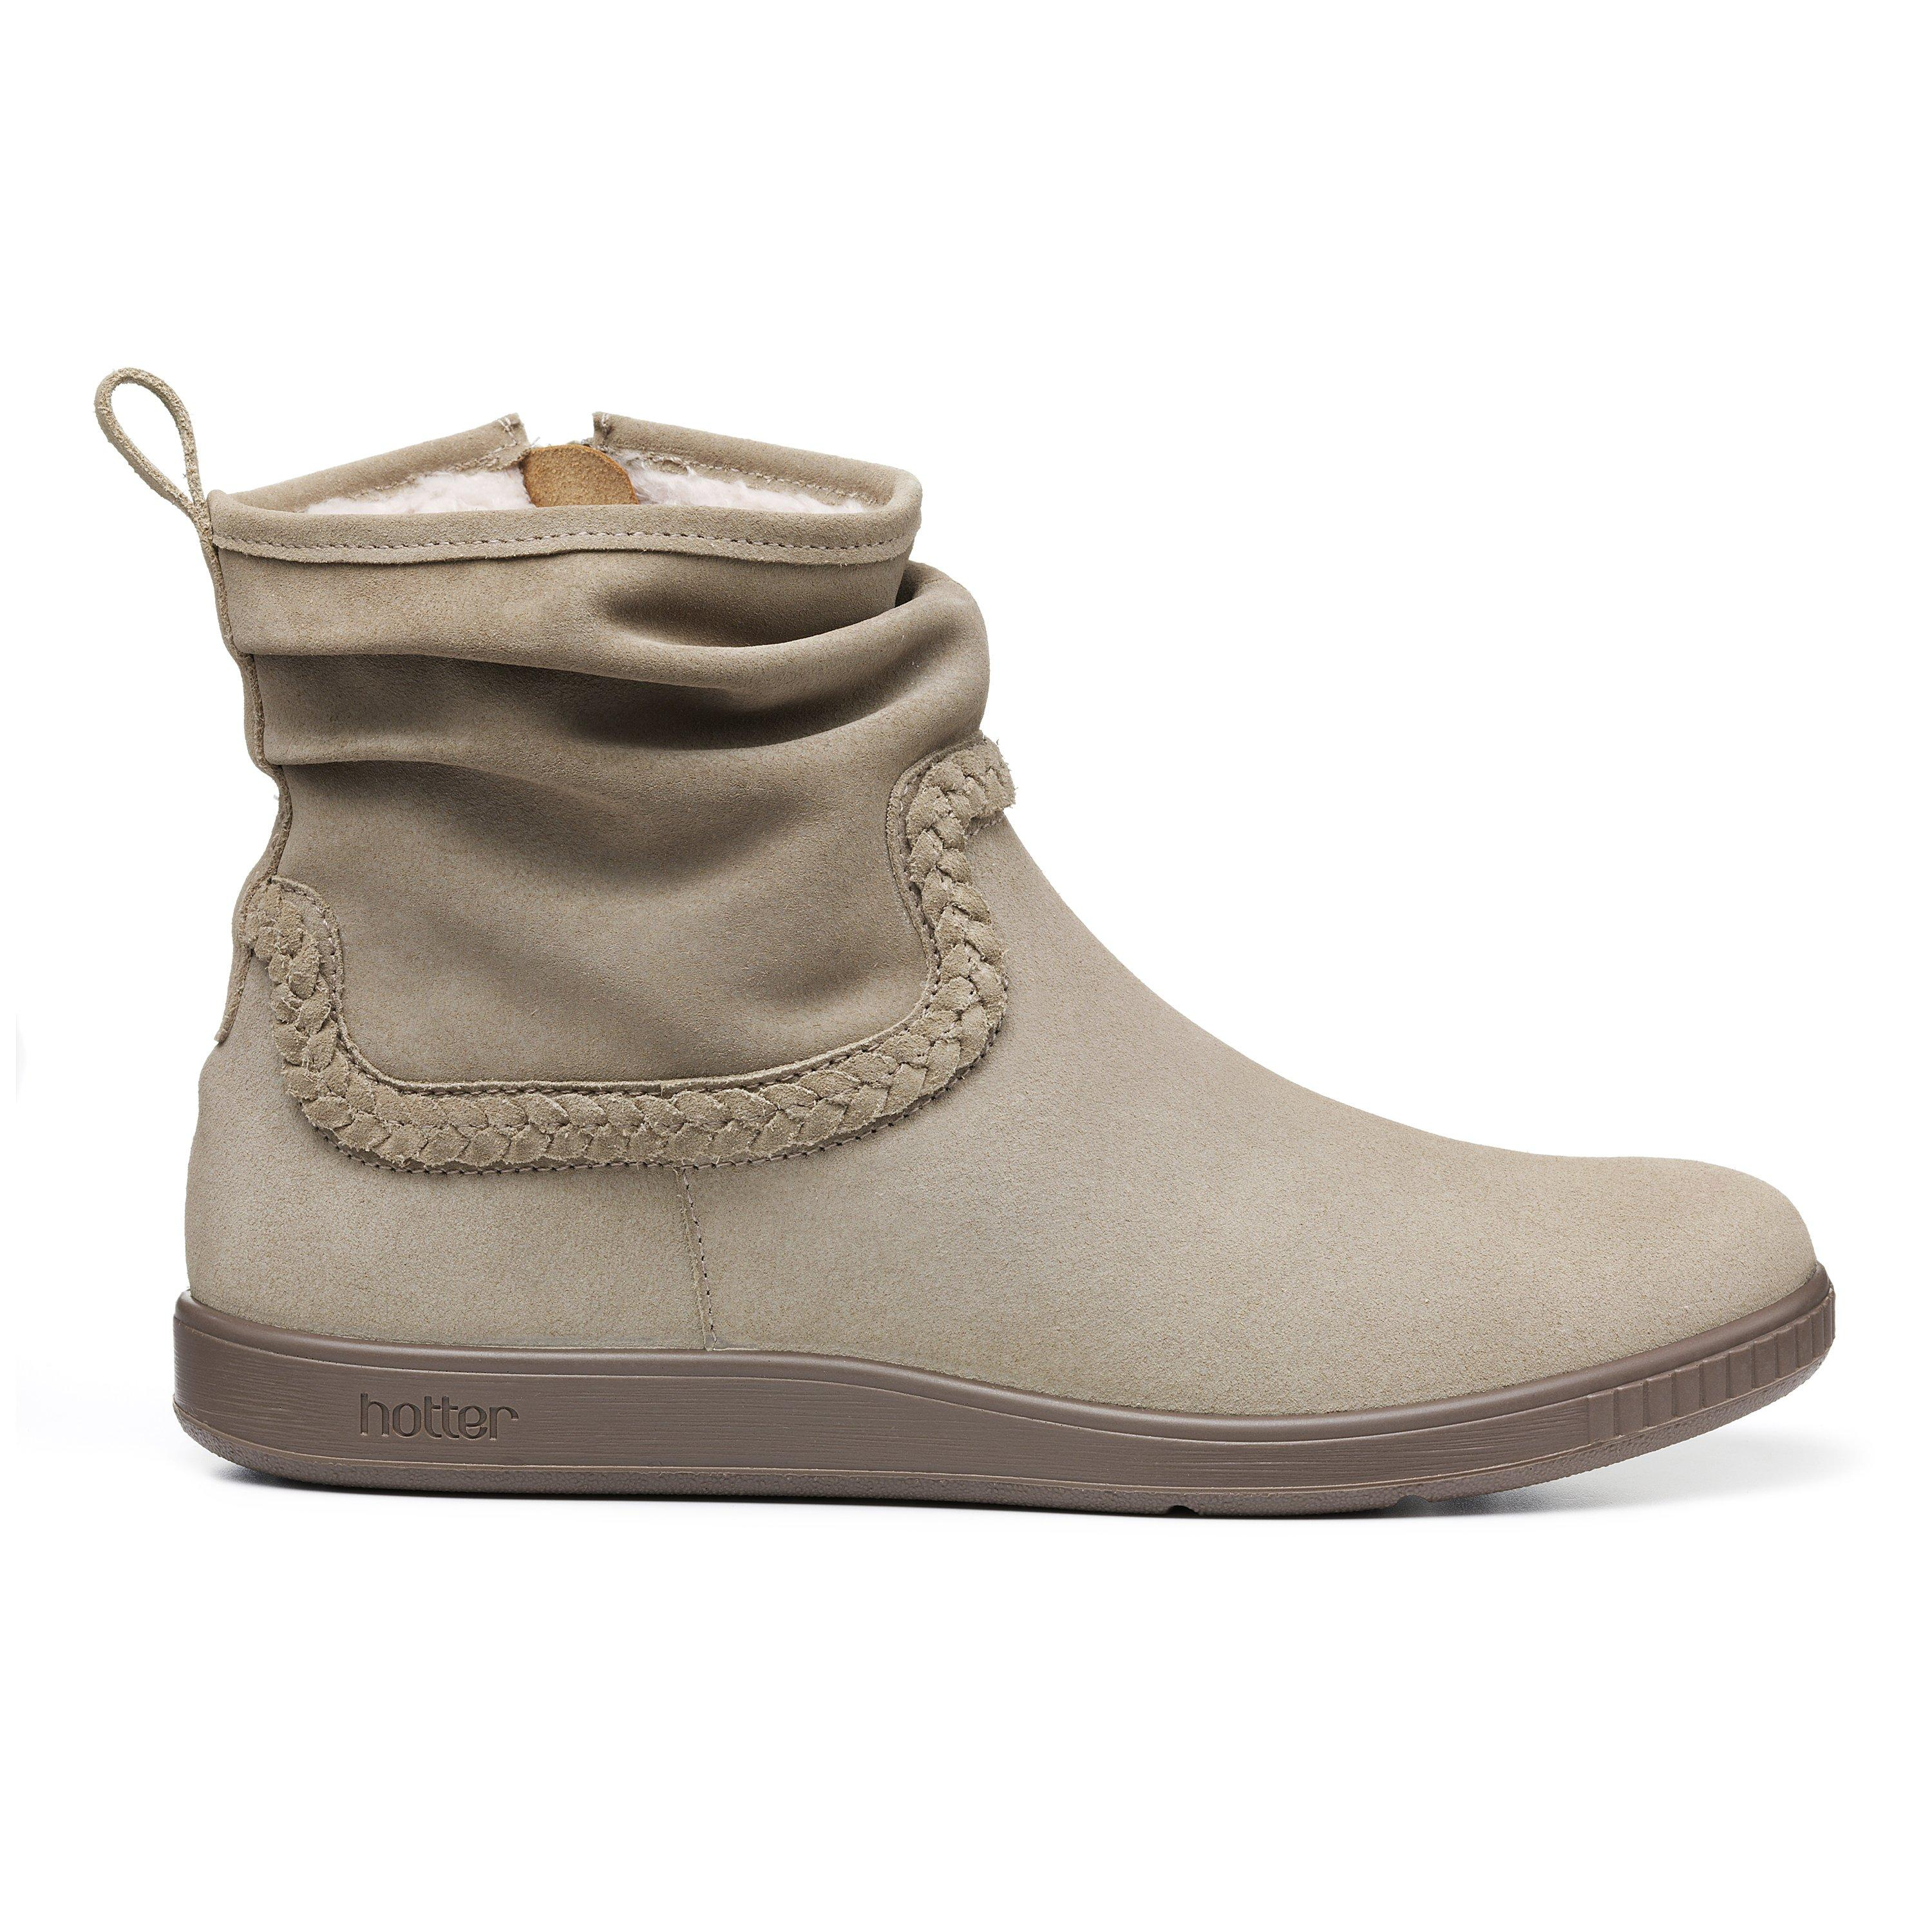 80s Shoes, Sneakers, Jelly flats  1980s Shoes Pixie II Boots - Taupe Wide Fit 11 $159.00 AT vintagedancer.com